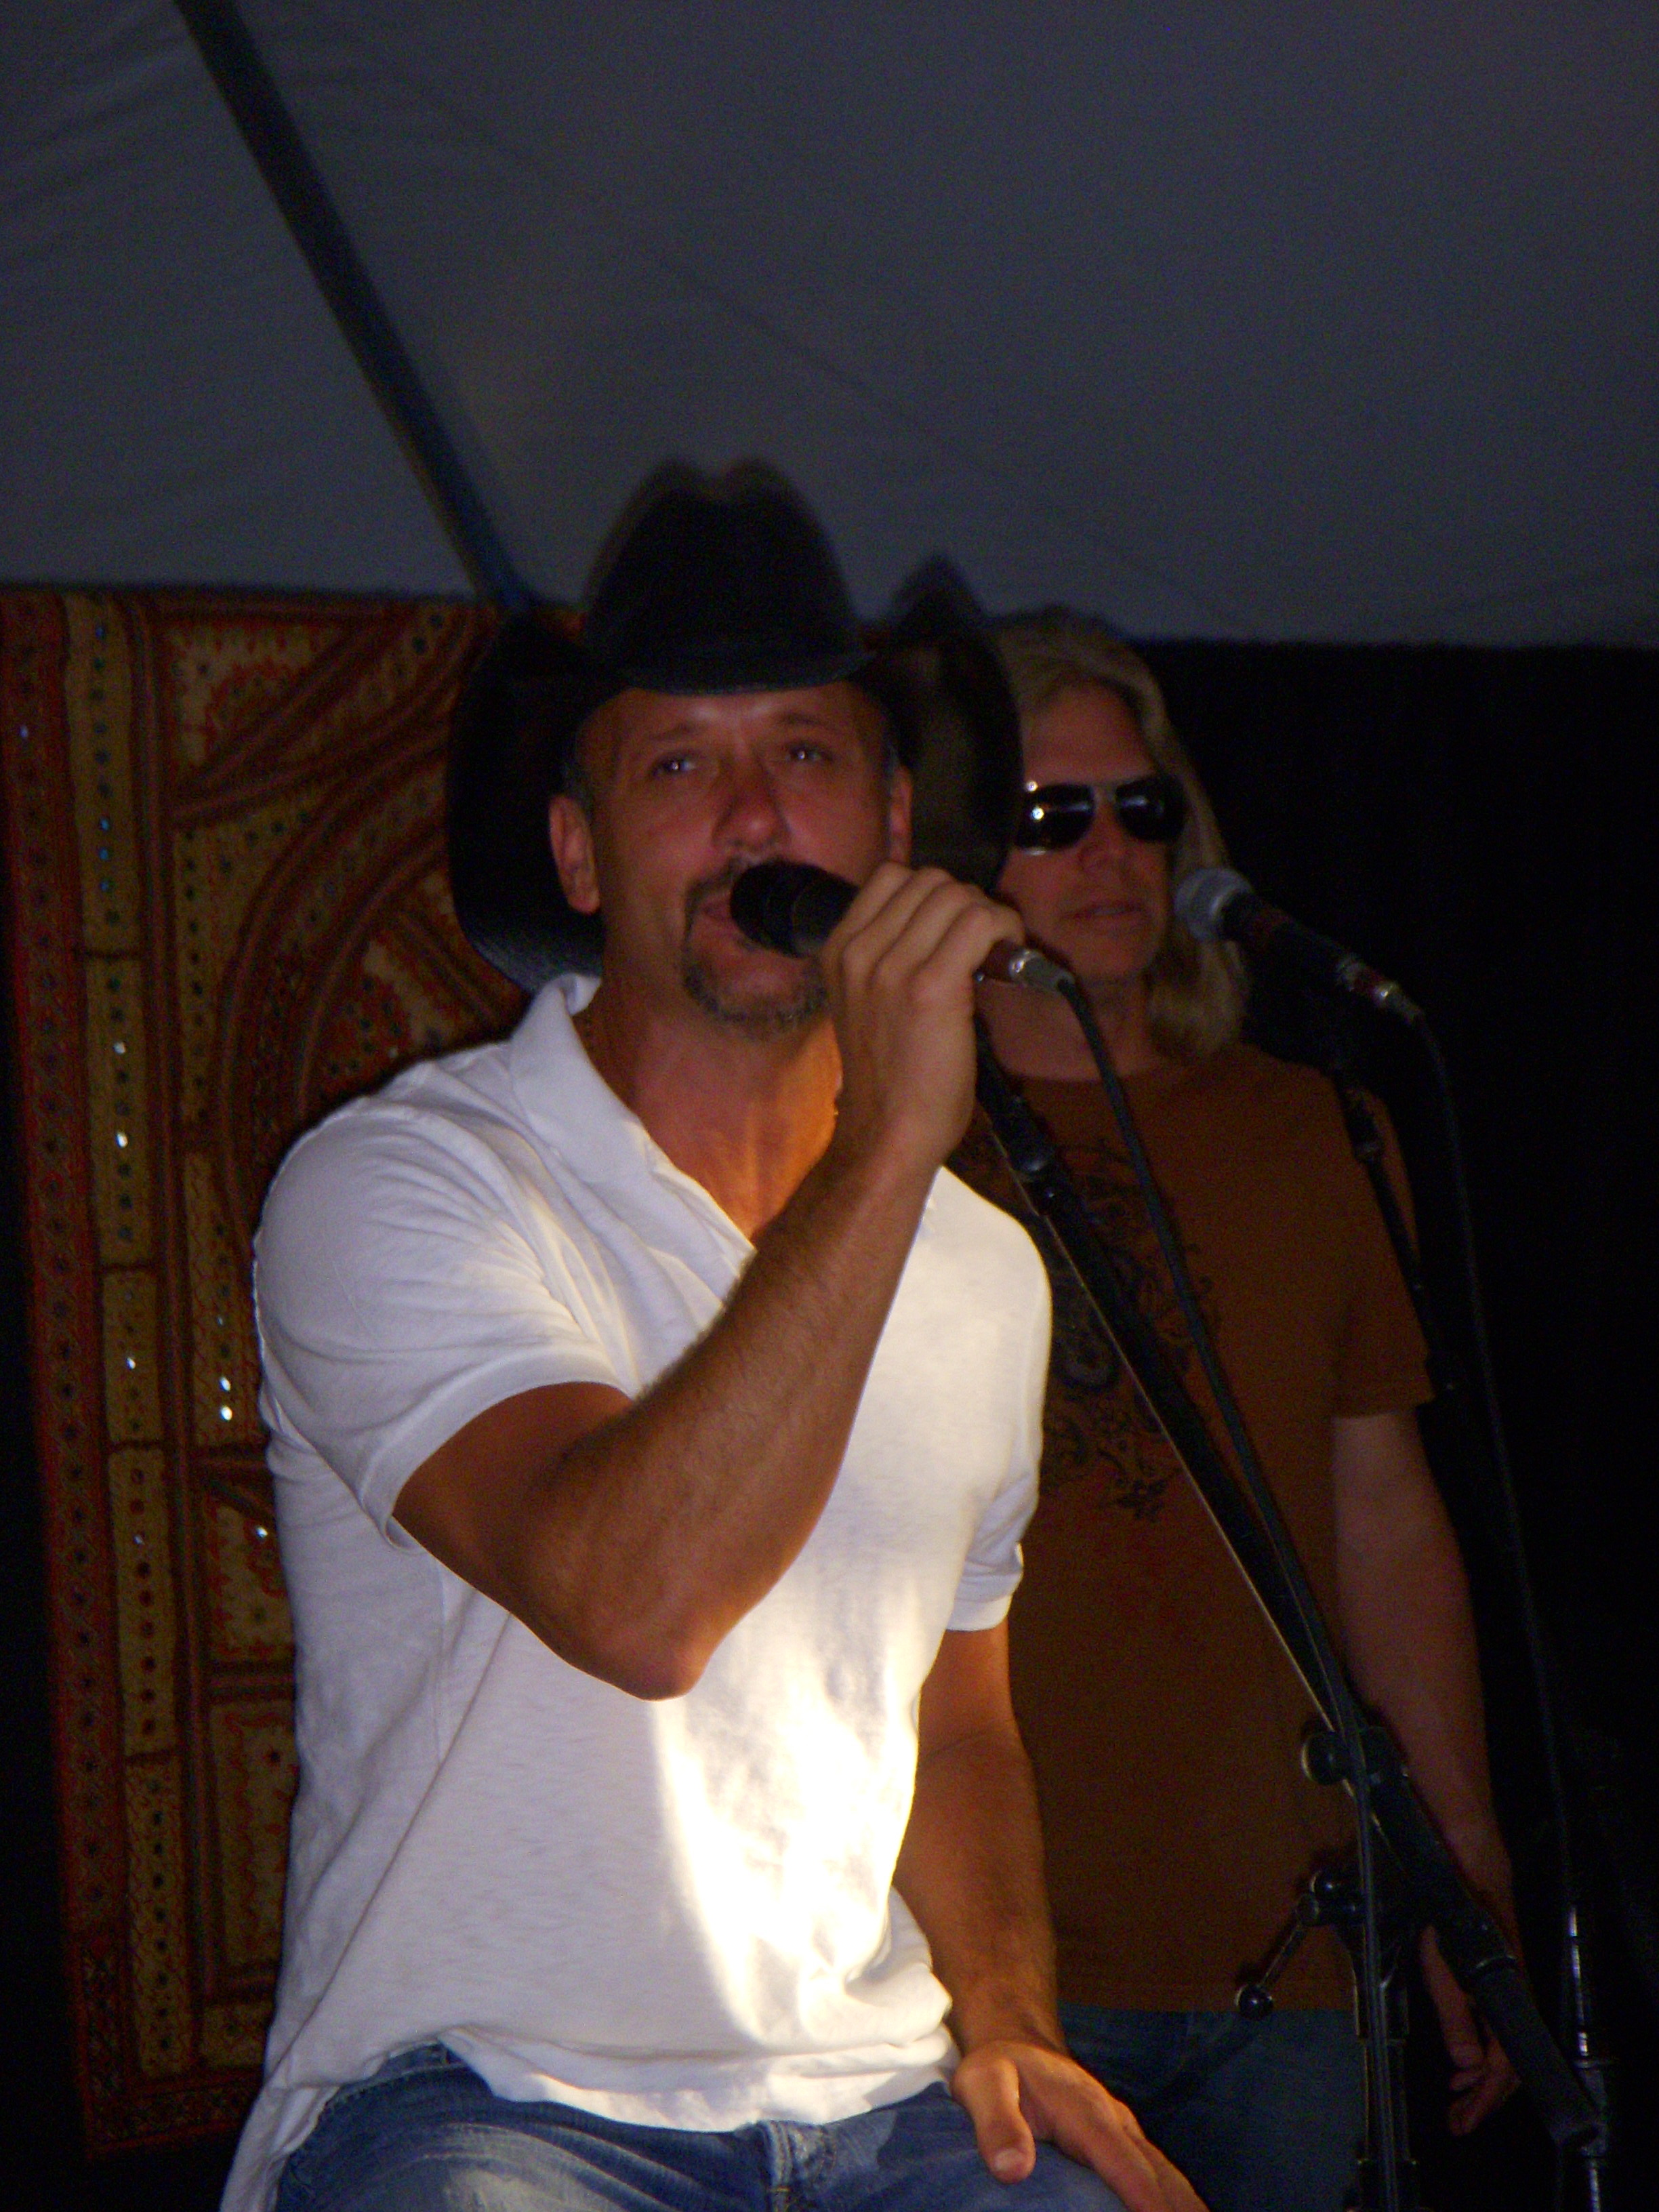 with Tim McGraw and asked